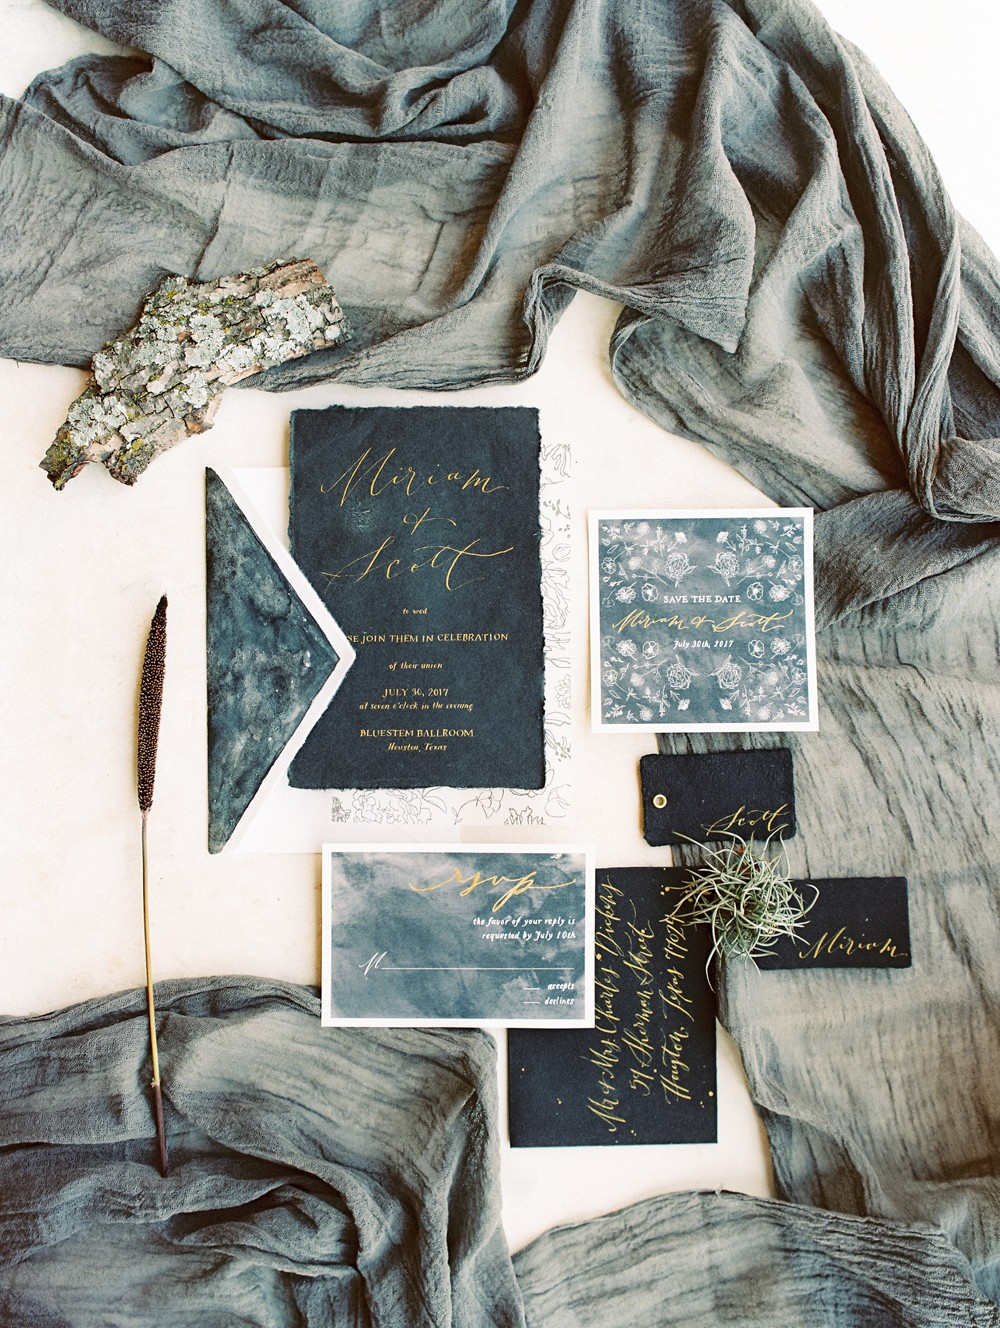 Dark & Moody Wedding Inspiration for Halloween